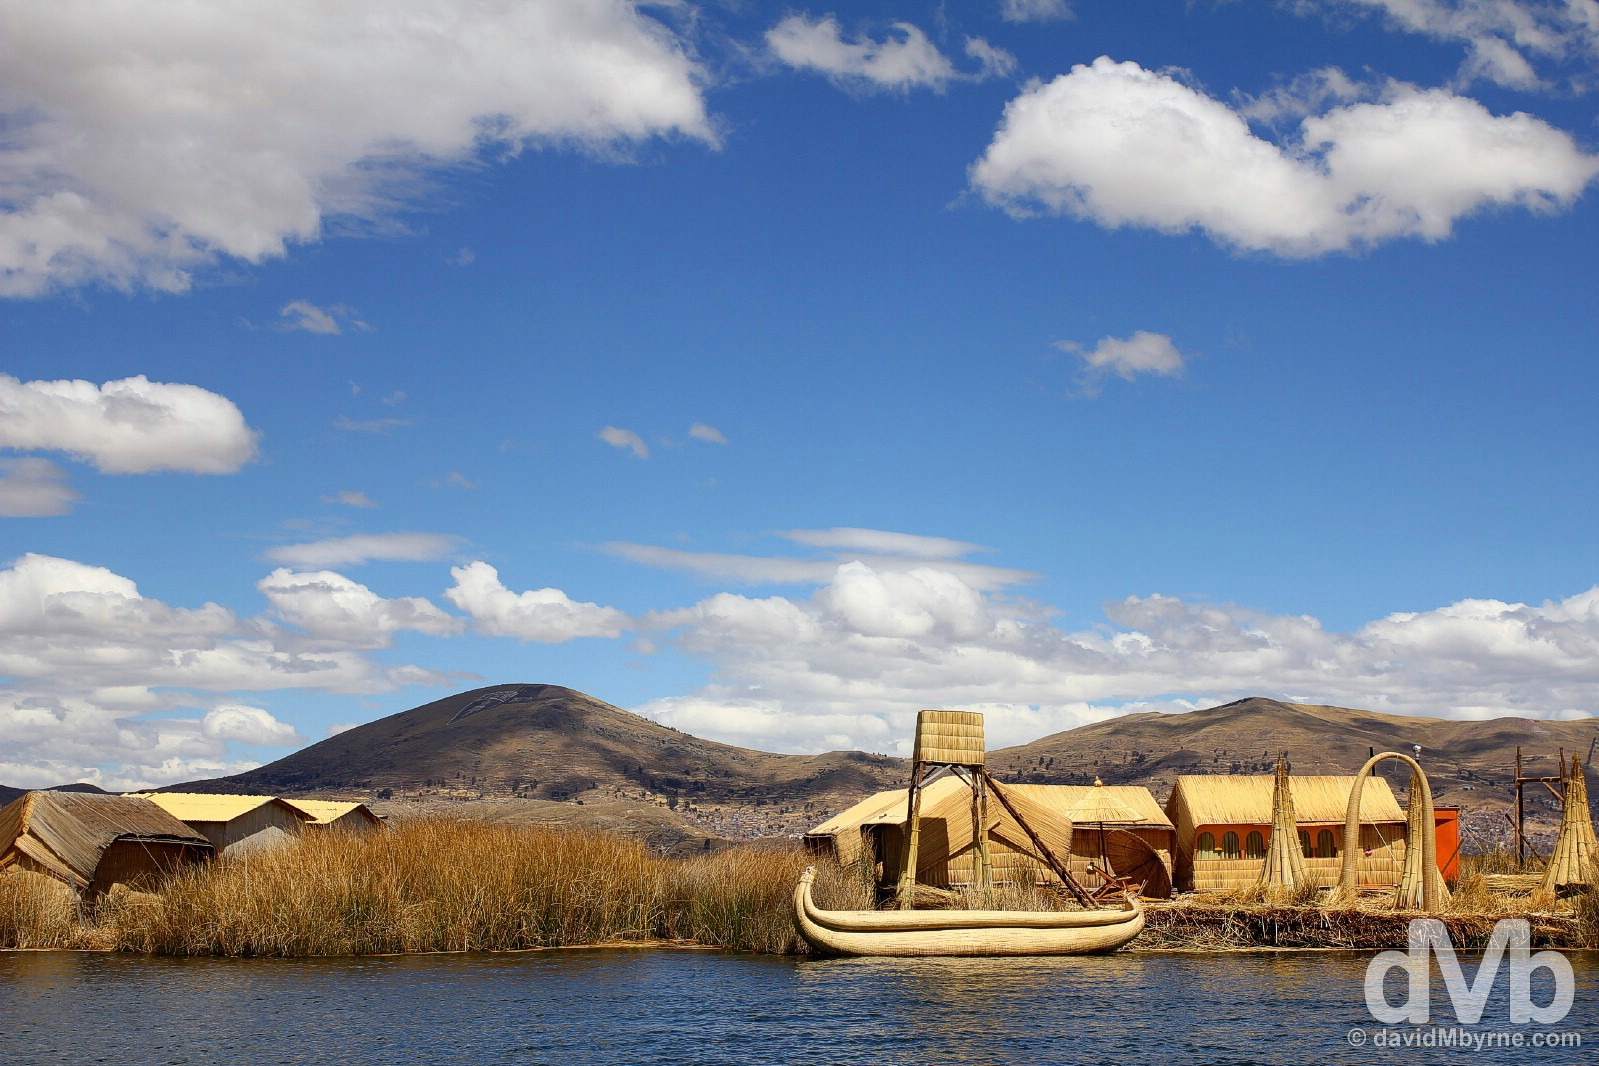 Uros floating Islands, Lake Titicaca, Peru. August 19, 2015.